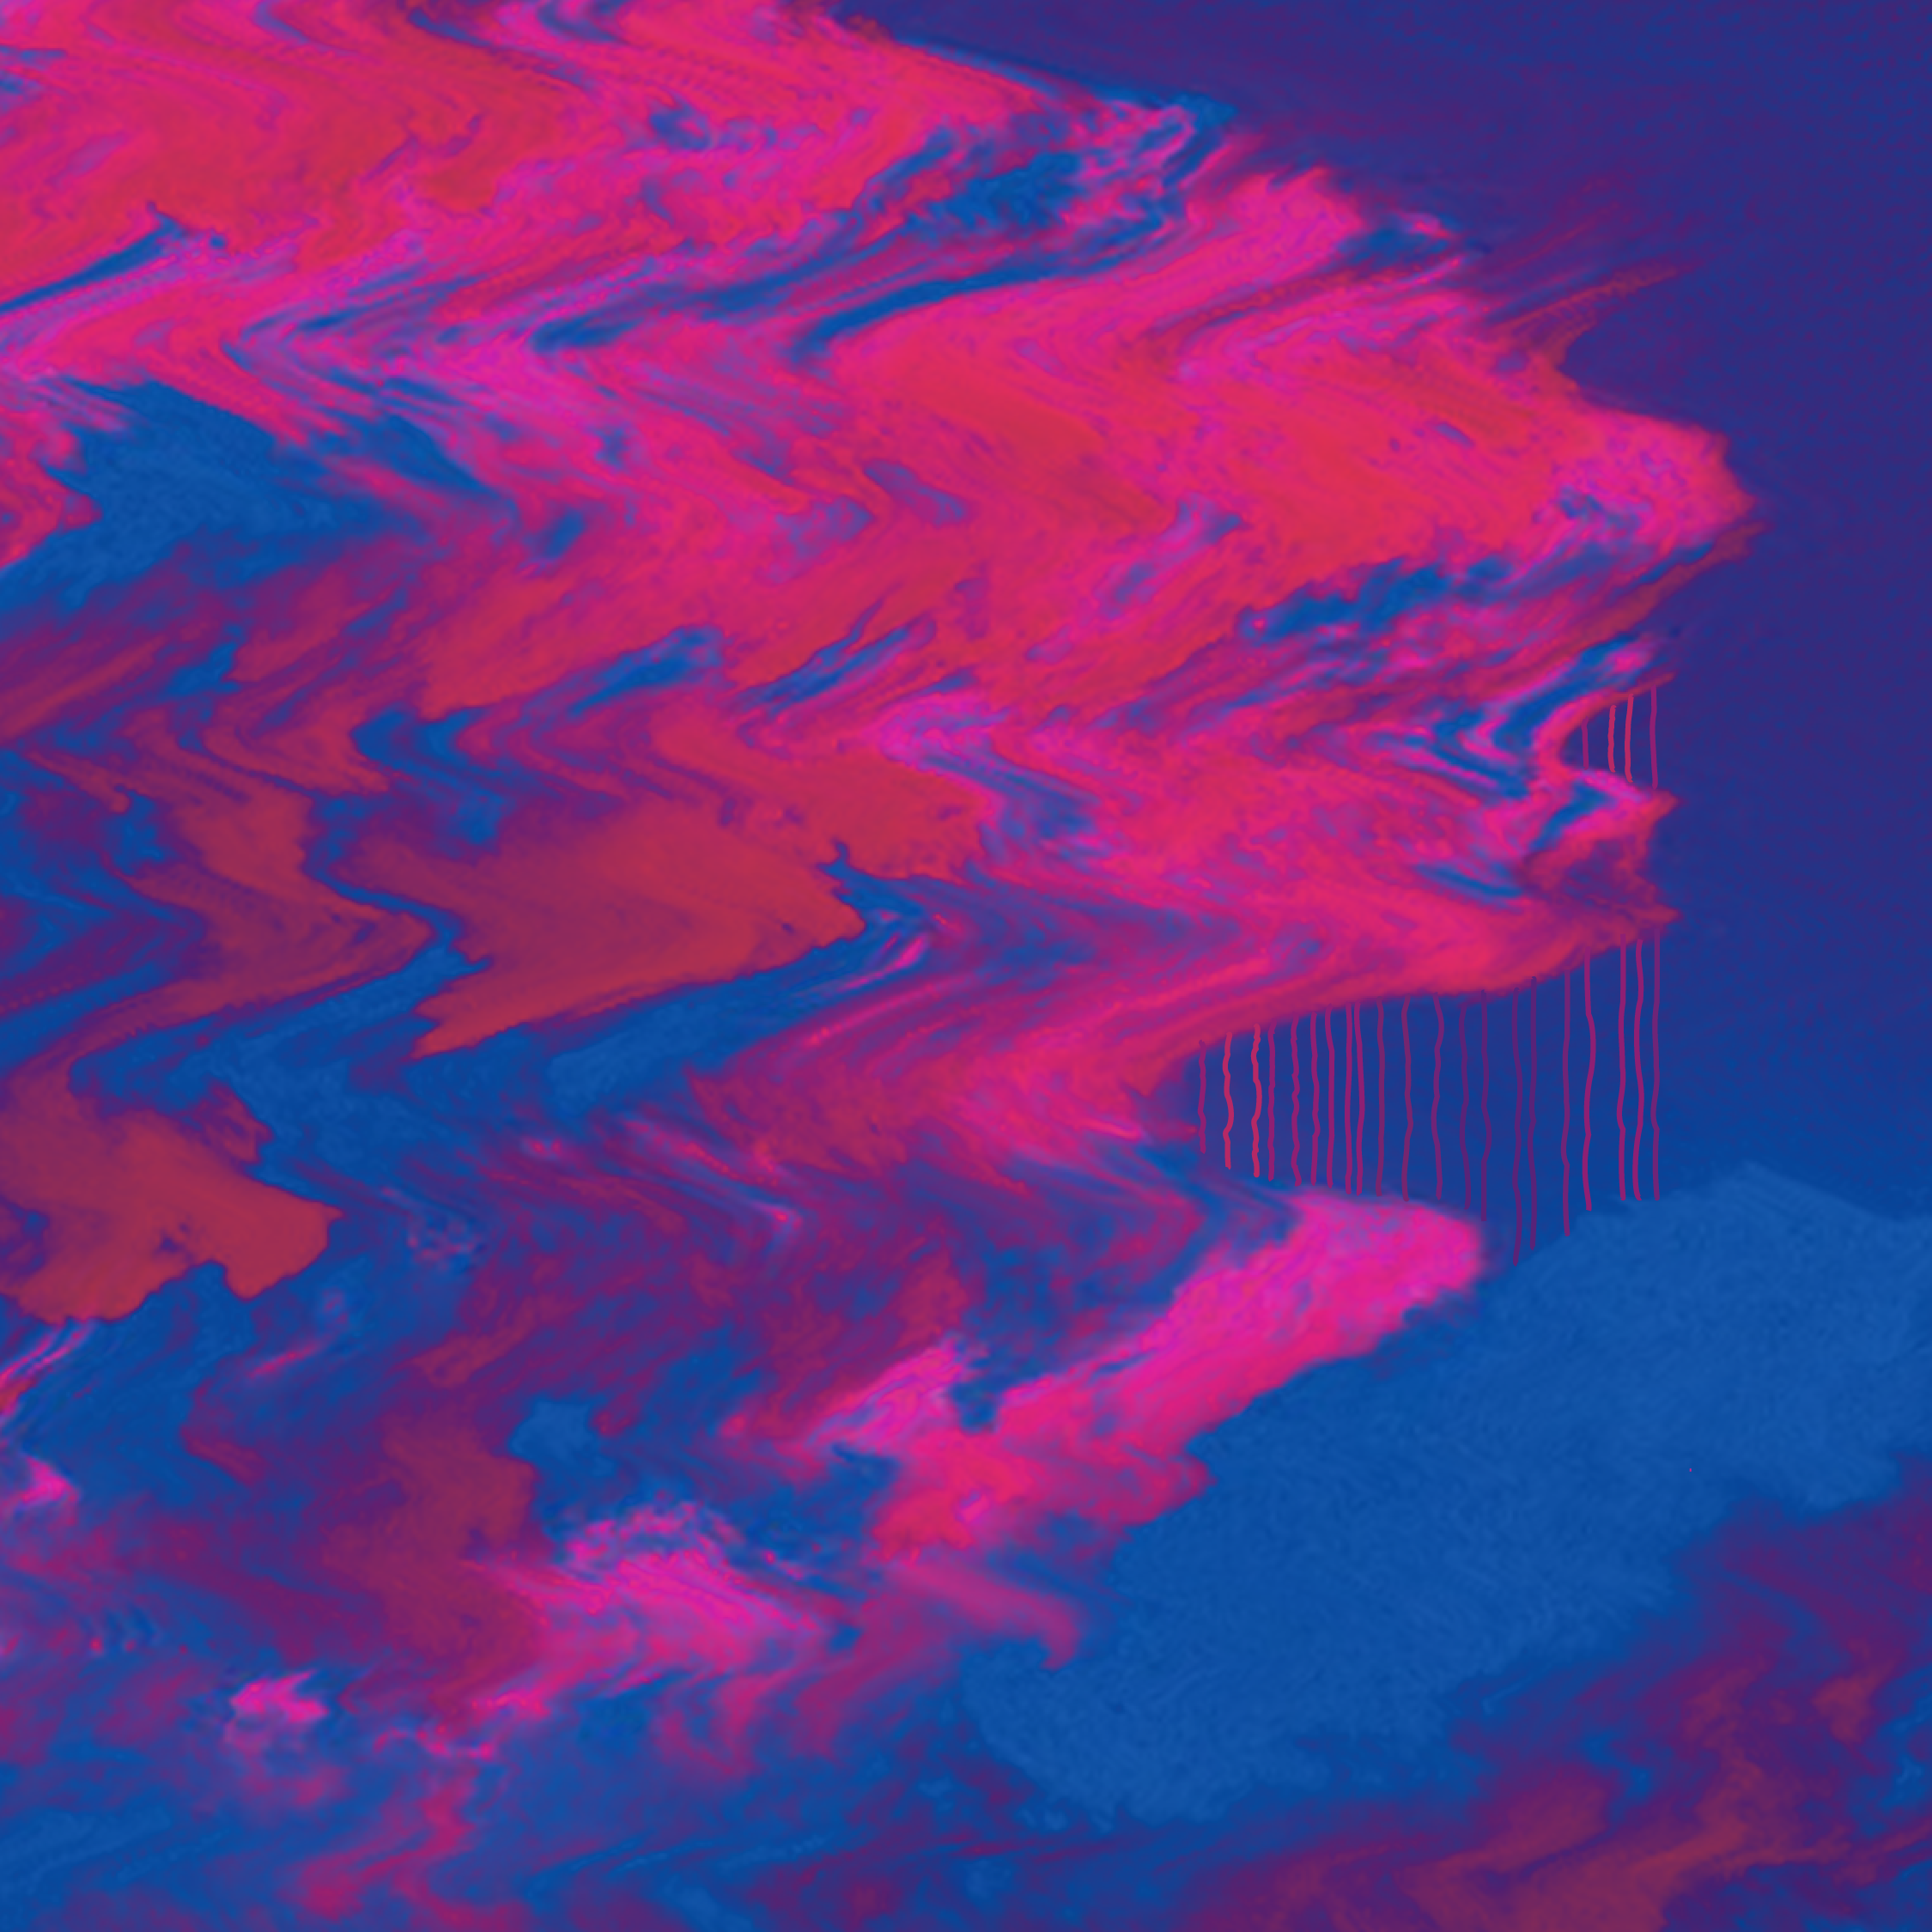 Abstract image of a wavy cloud made of blue and pink